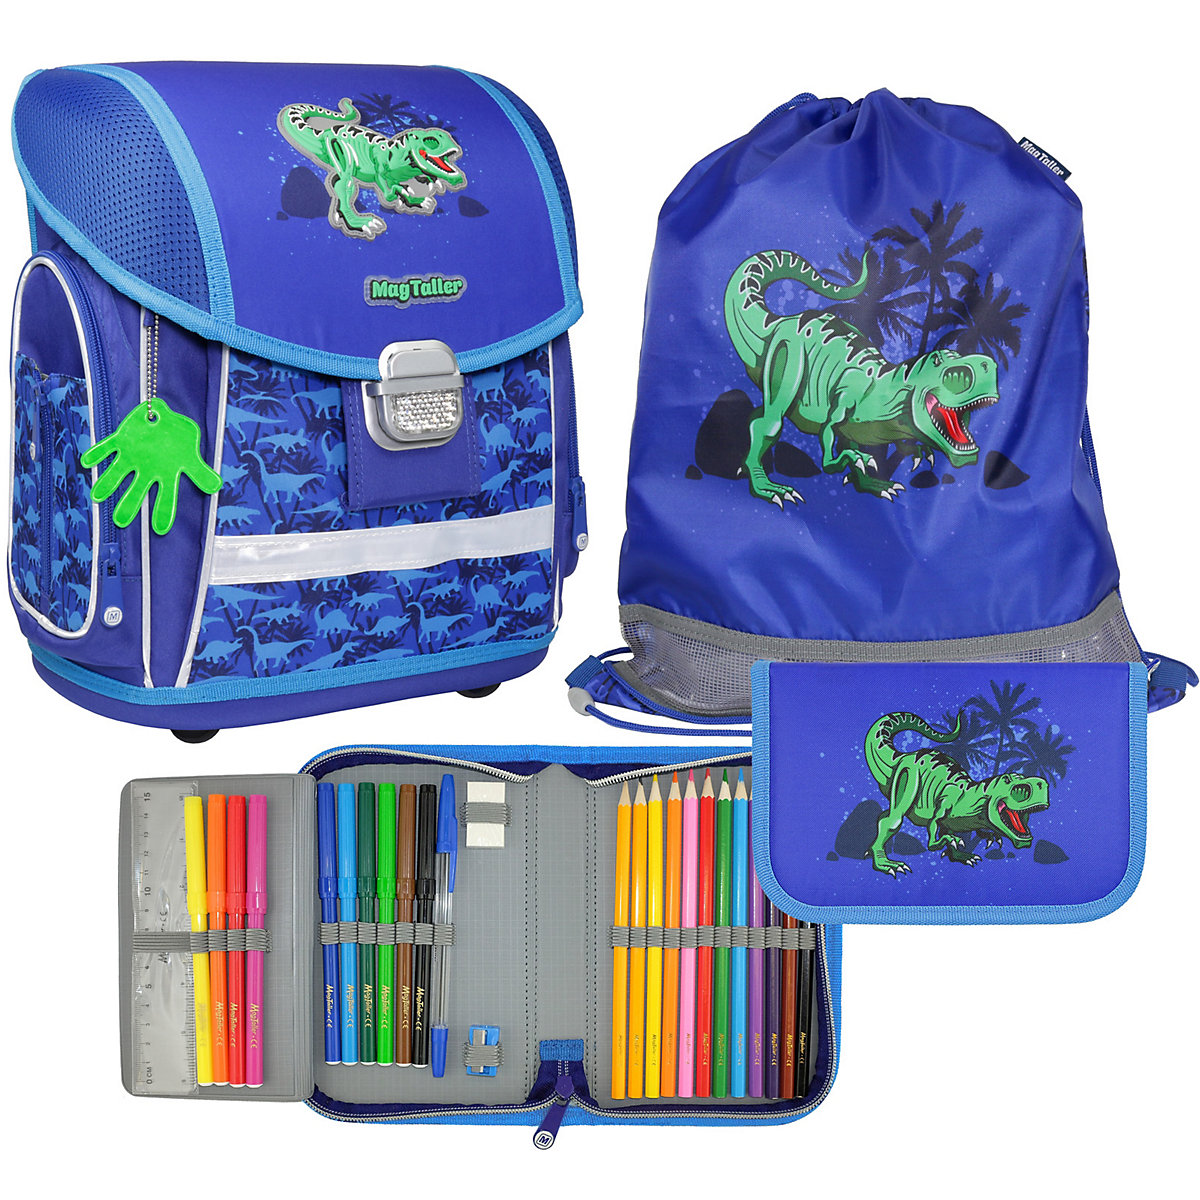 School Bags MAGTALLER 11154920 schoolbag backpack knapsacks orthopedic bag for boy and girl animals flower sprints school bags magtaller 11154976 schoolbag backpack knapsacks orthopedic bag for boy and girl animals flower sprints